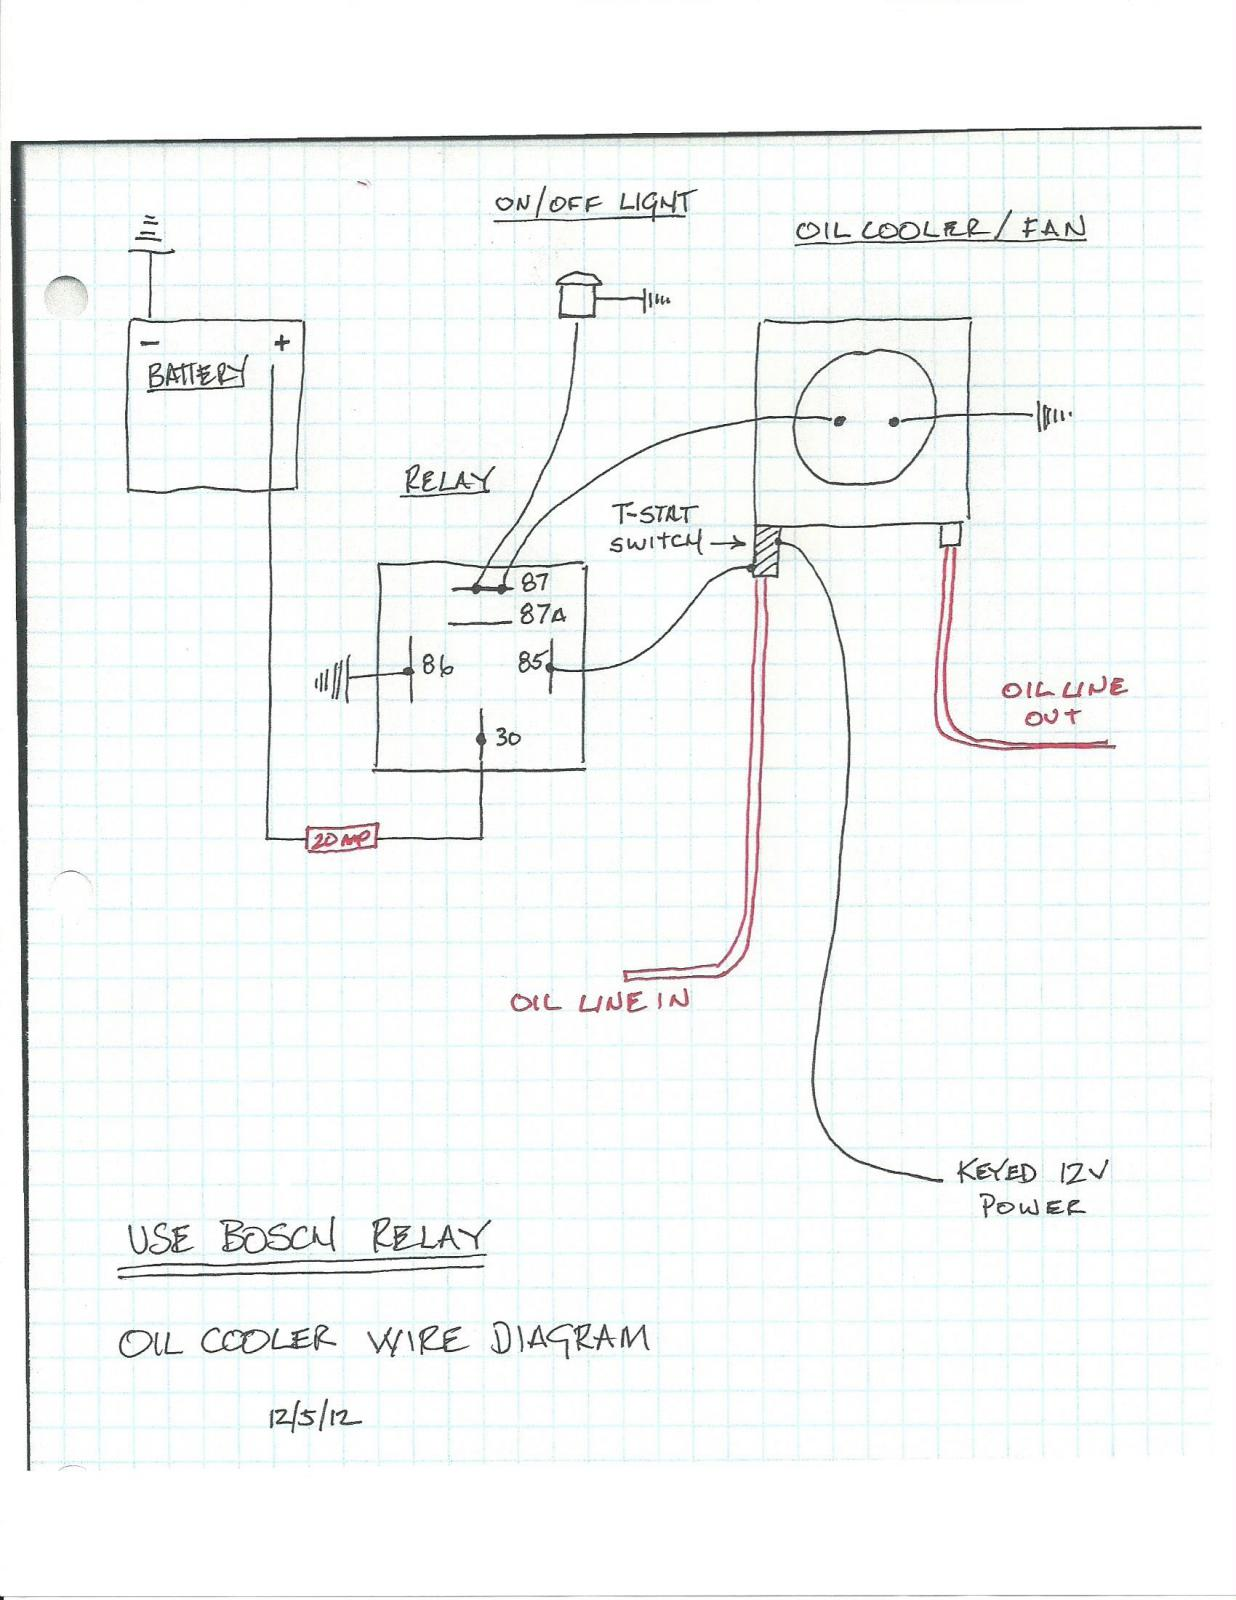 thesamba.com :: performance/engines/transmissions - view topic - wiring  diagram for oil cooler fan  thesamba.com